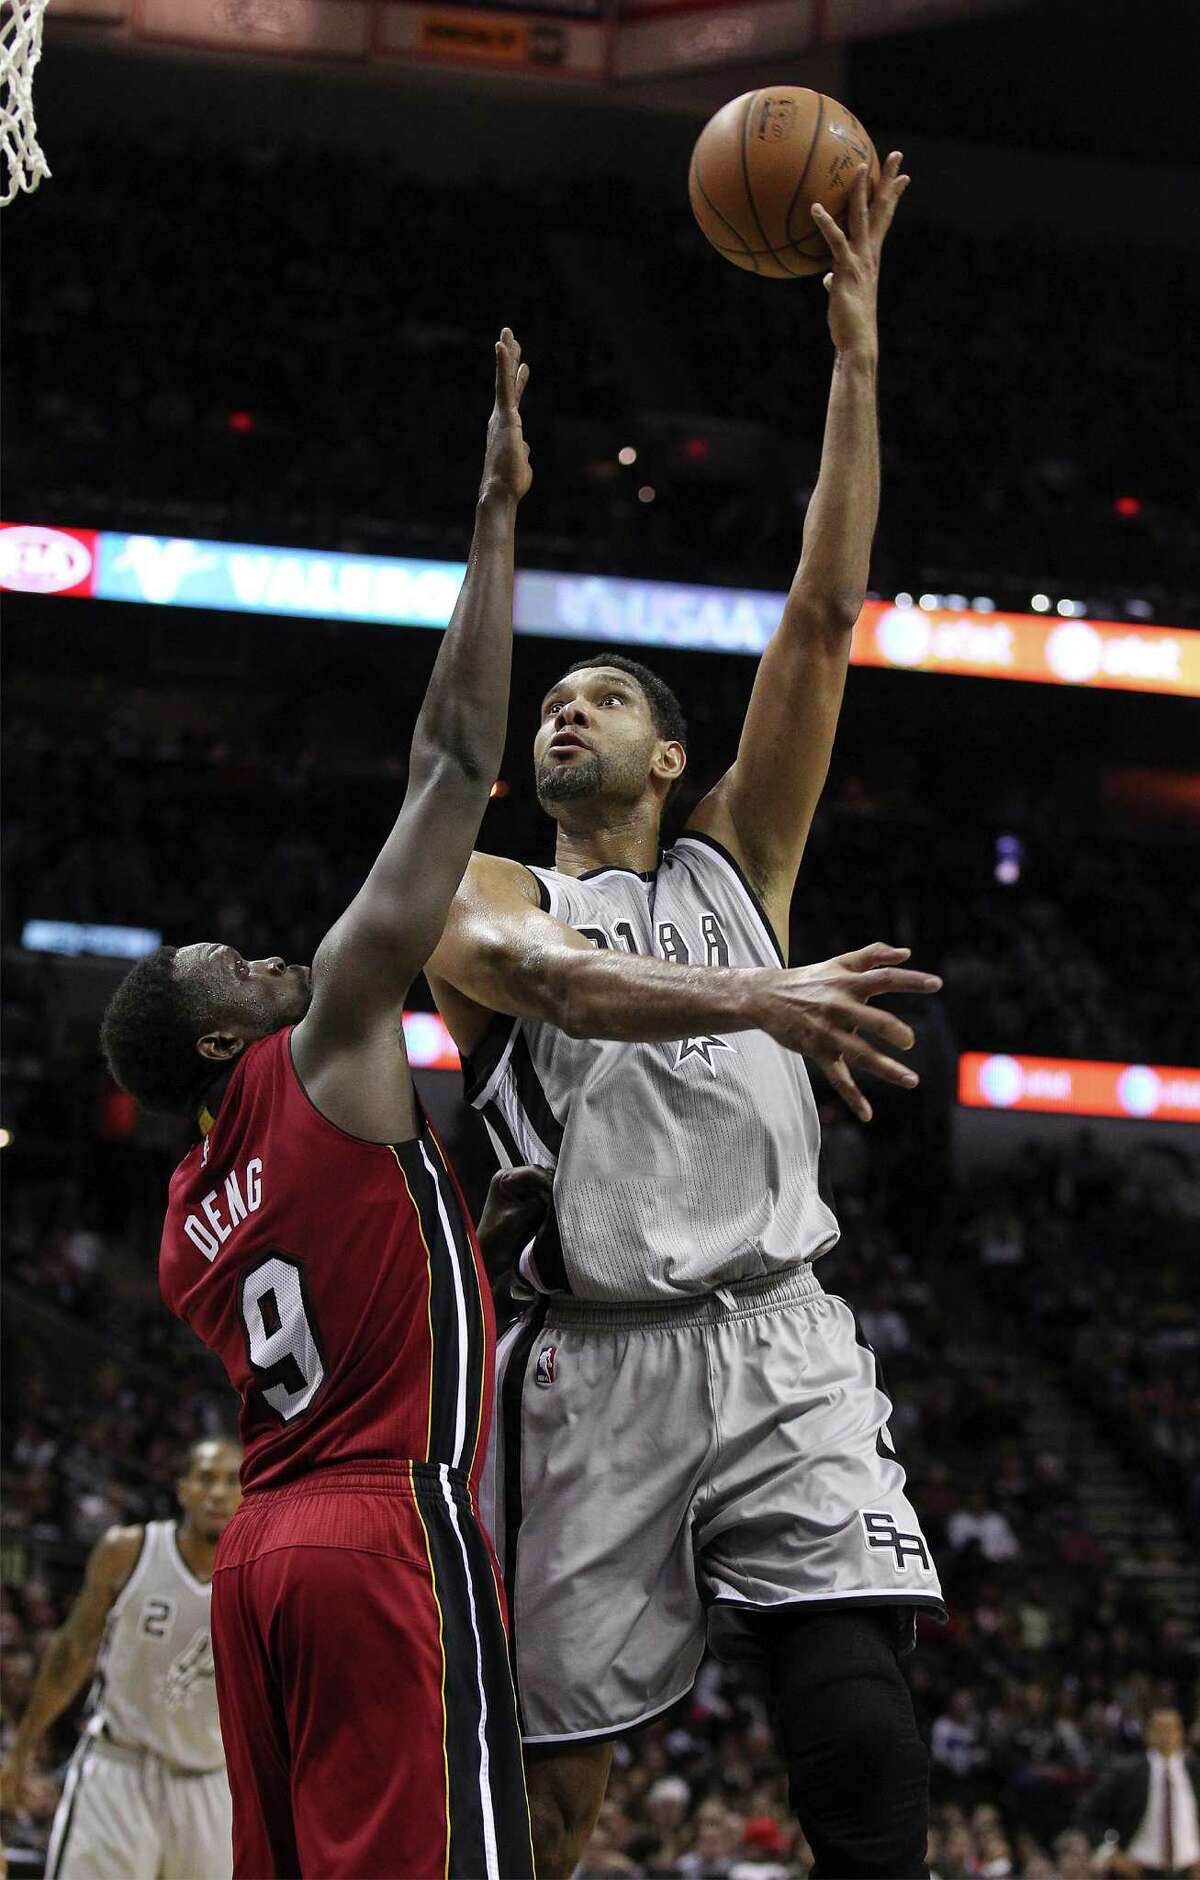 Spurs' Tim Duncan (21) shoots over Miami Heat's Luol Deng (09) at the AT&T Center on Friday, Feb. 6, 2015. (Kin Man Hui/San Antonio Express-News)